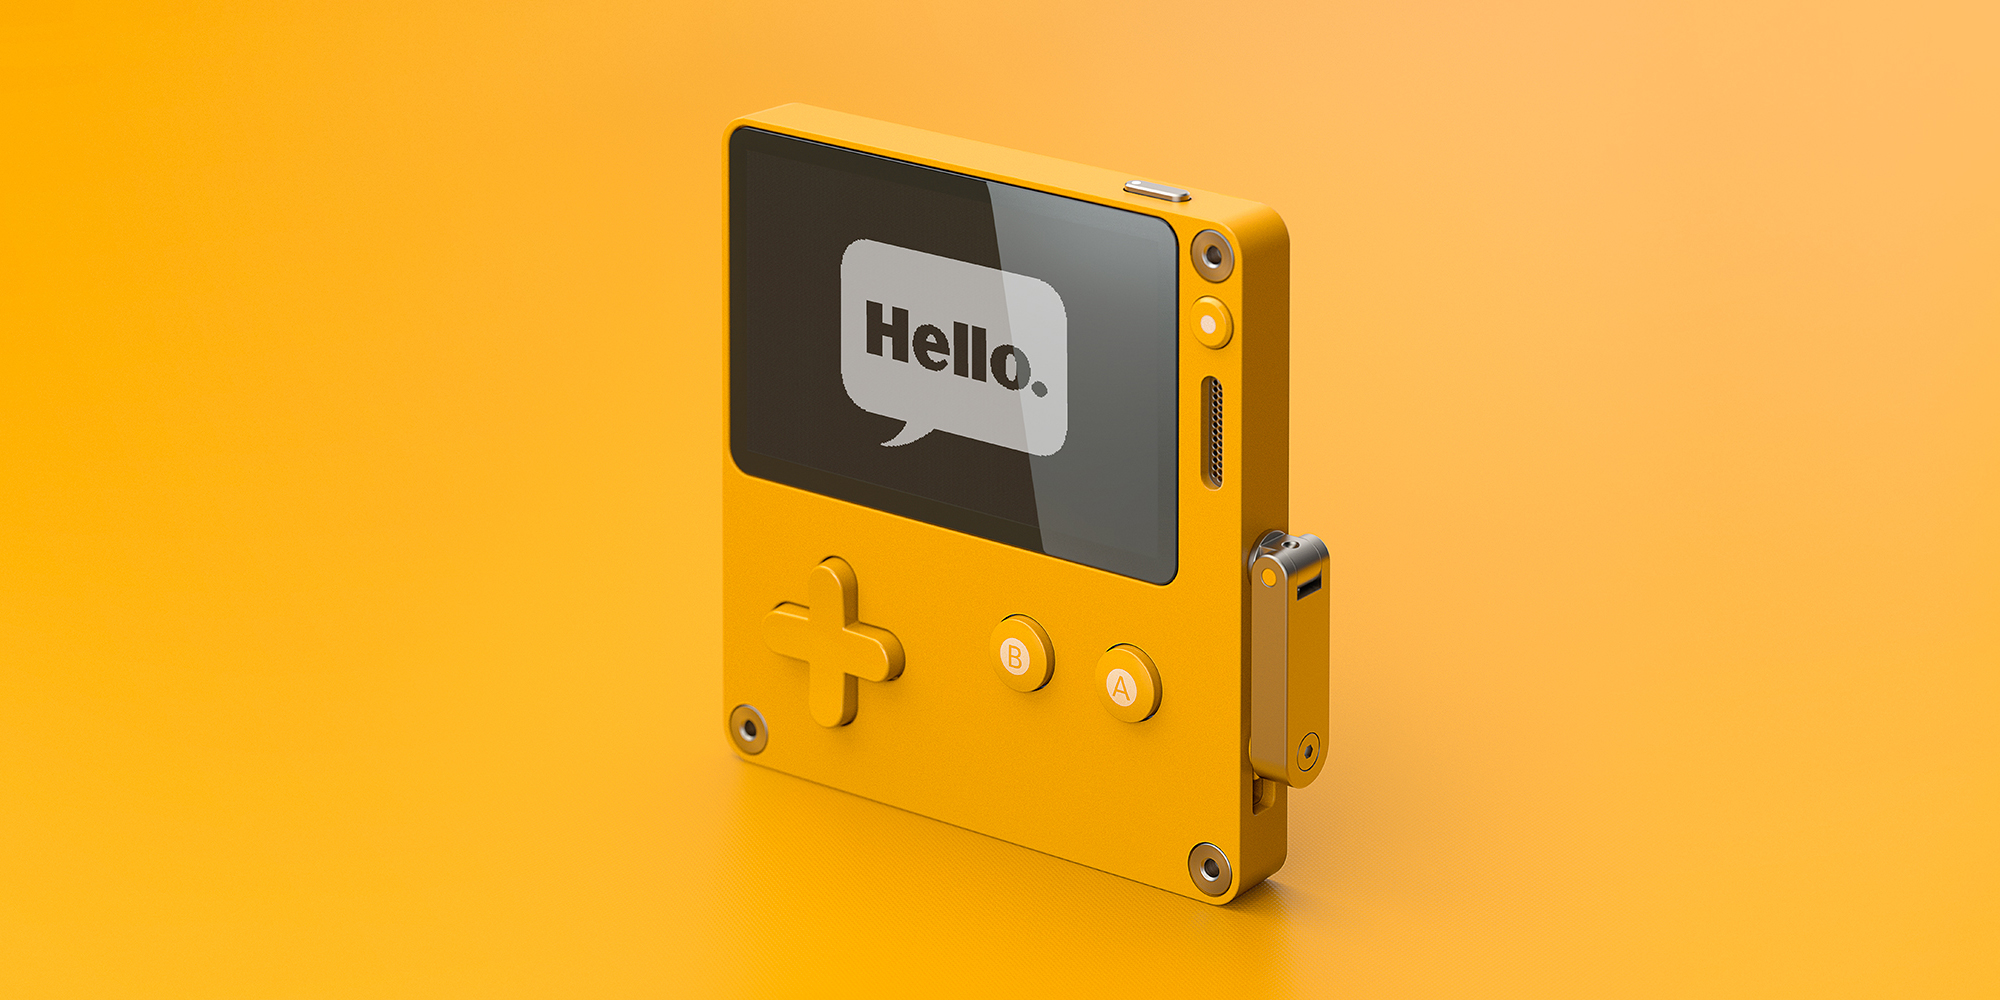 The guys behind Firewatch just announced their own handheld console